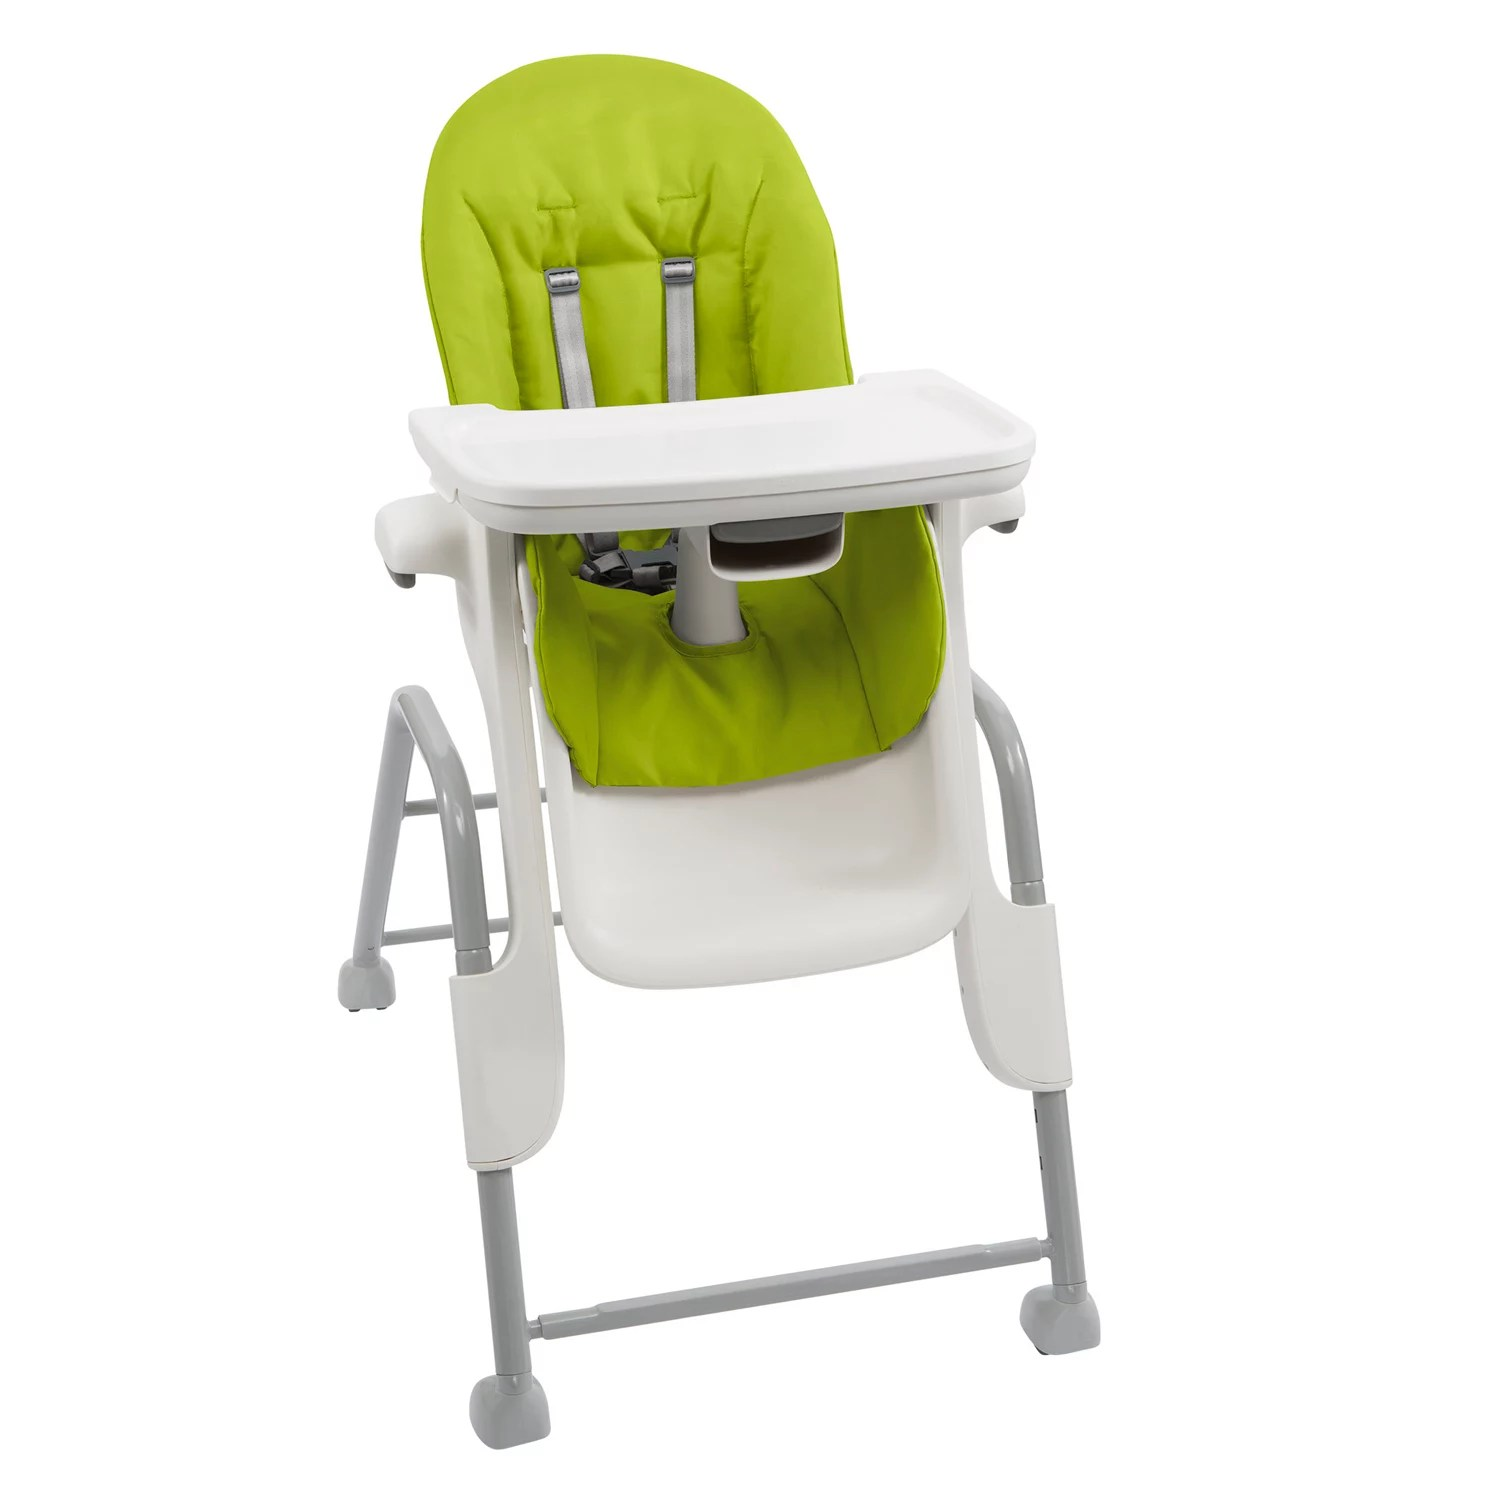 oxo tot high chair recall unusual bedroom chairs seedling